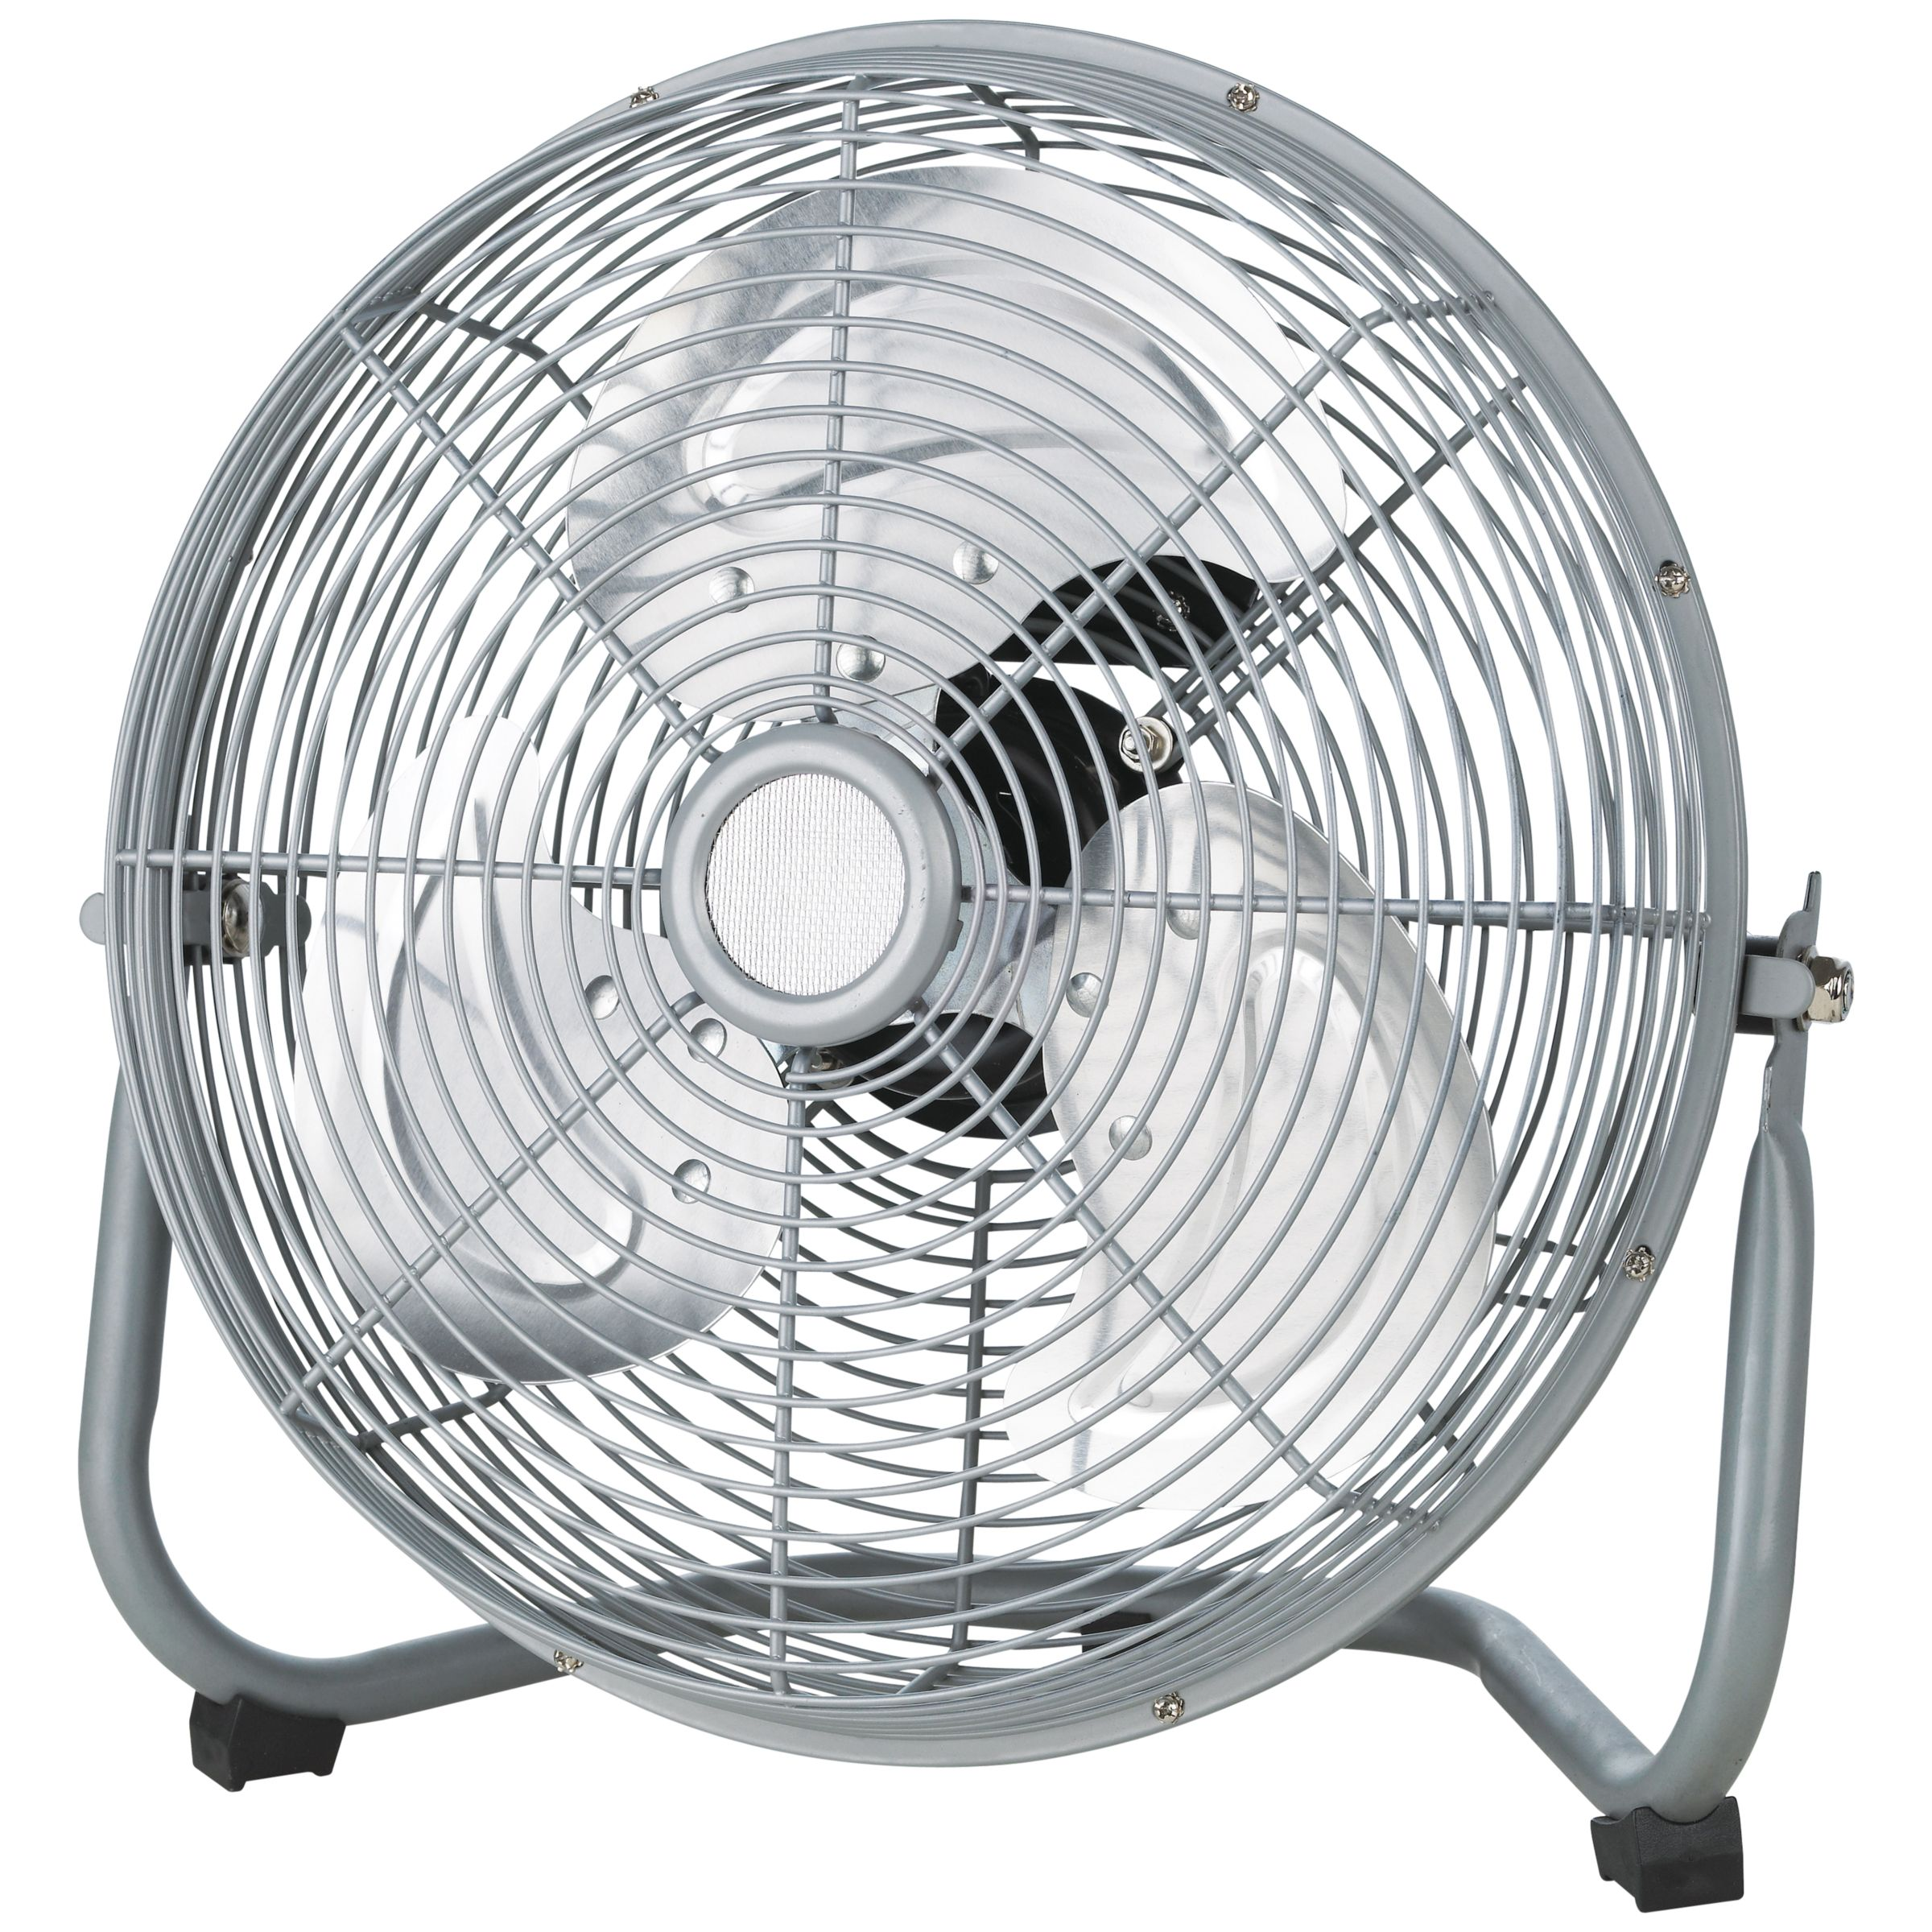 "NSA'UK SFC-300BP 12"" Air Circulator Fan, Silver"